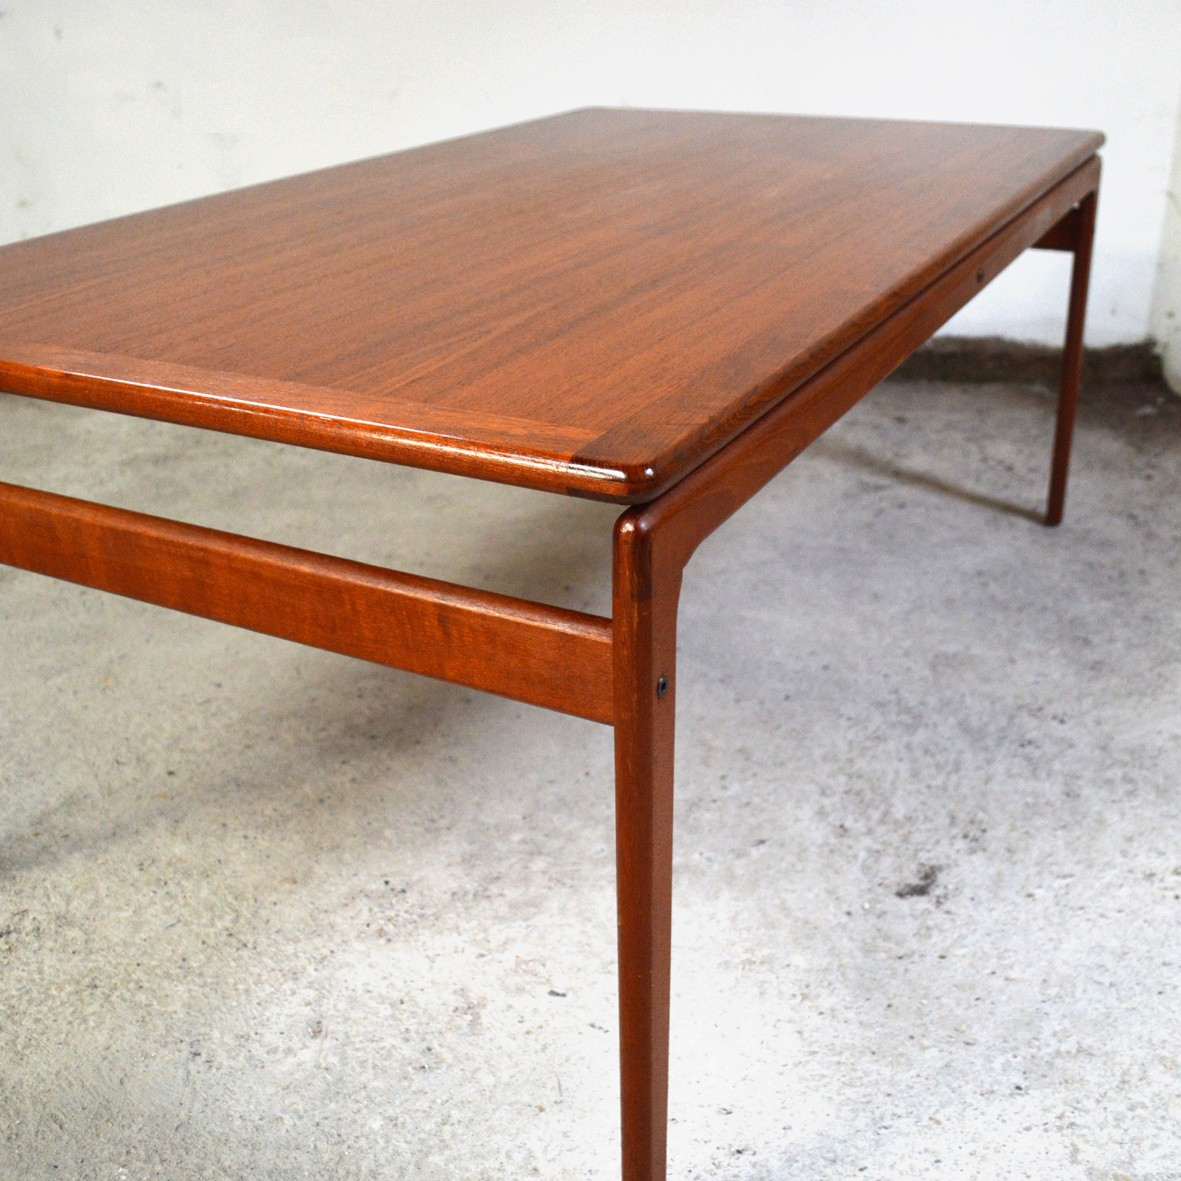 Vintage Danish teak coffee table for Trioh - 1970s ...